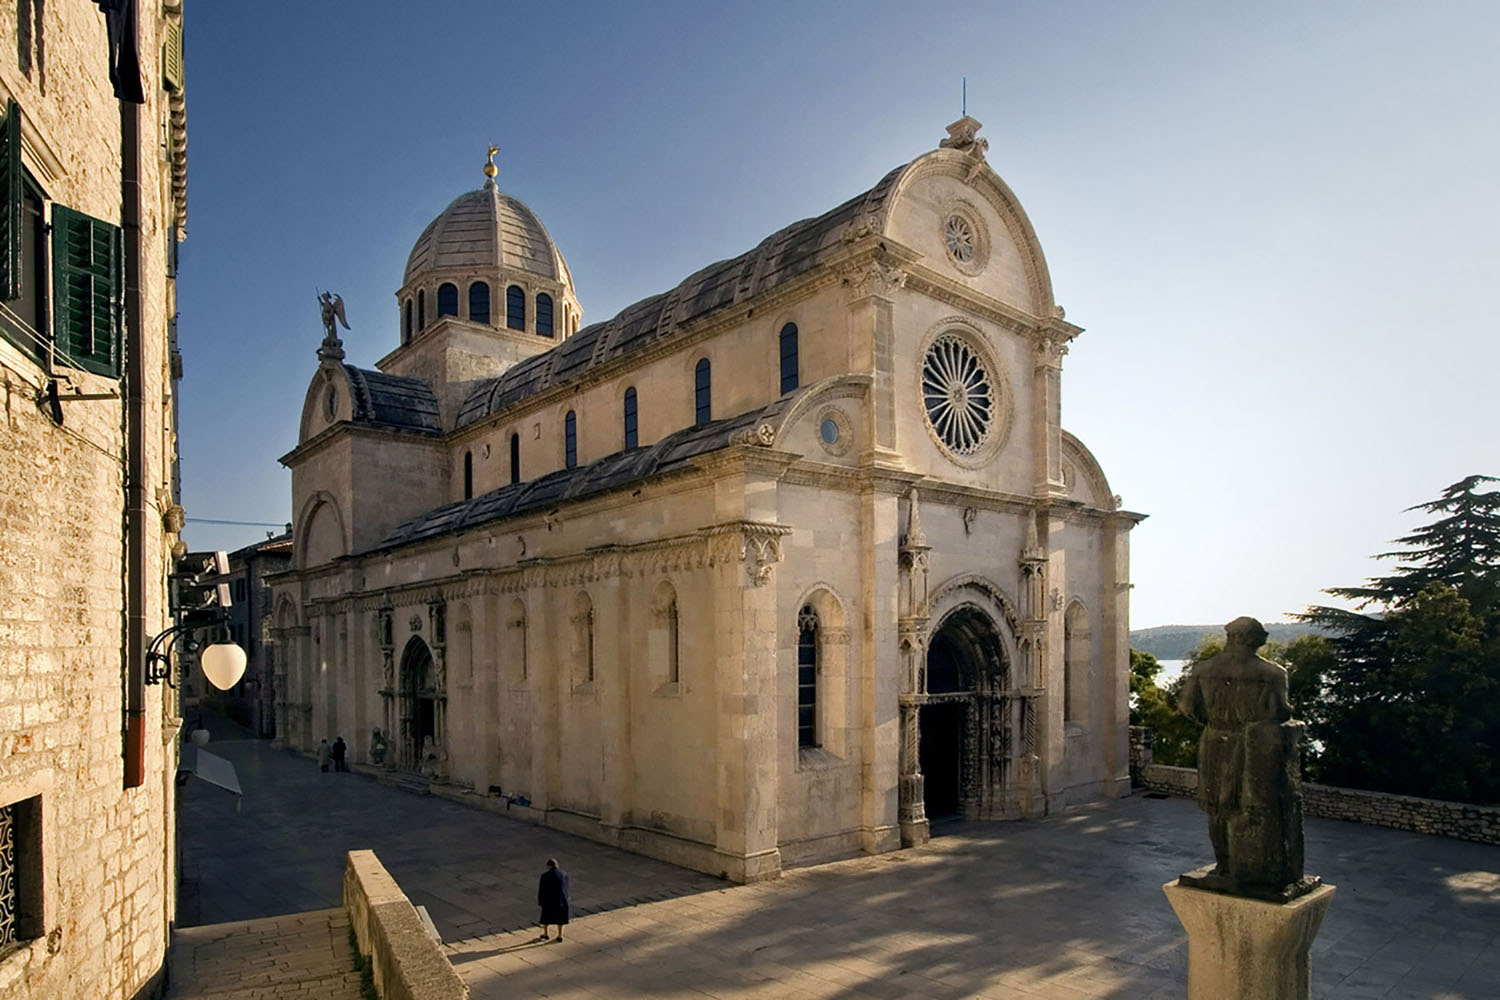 The Cathedral of St. James in Sibenik, Croatia on a clear day